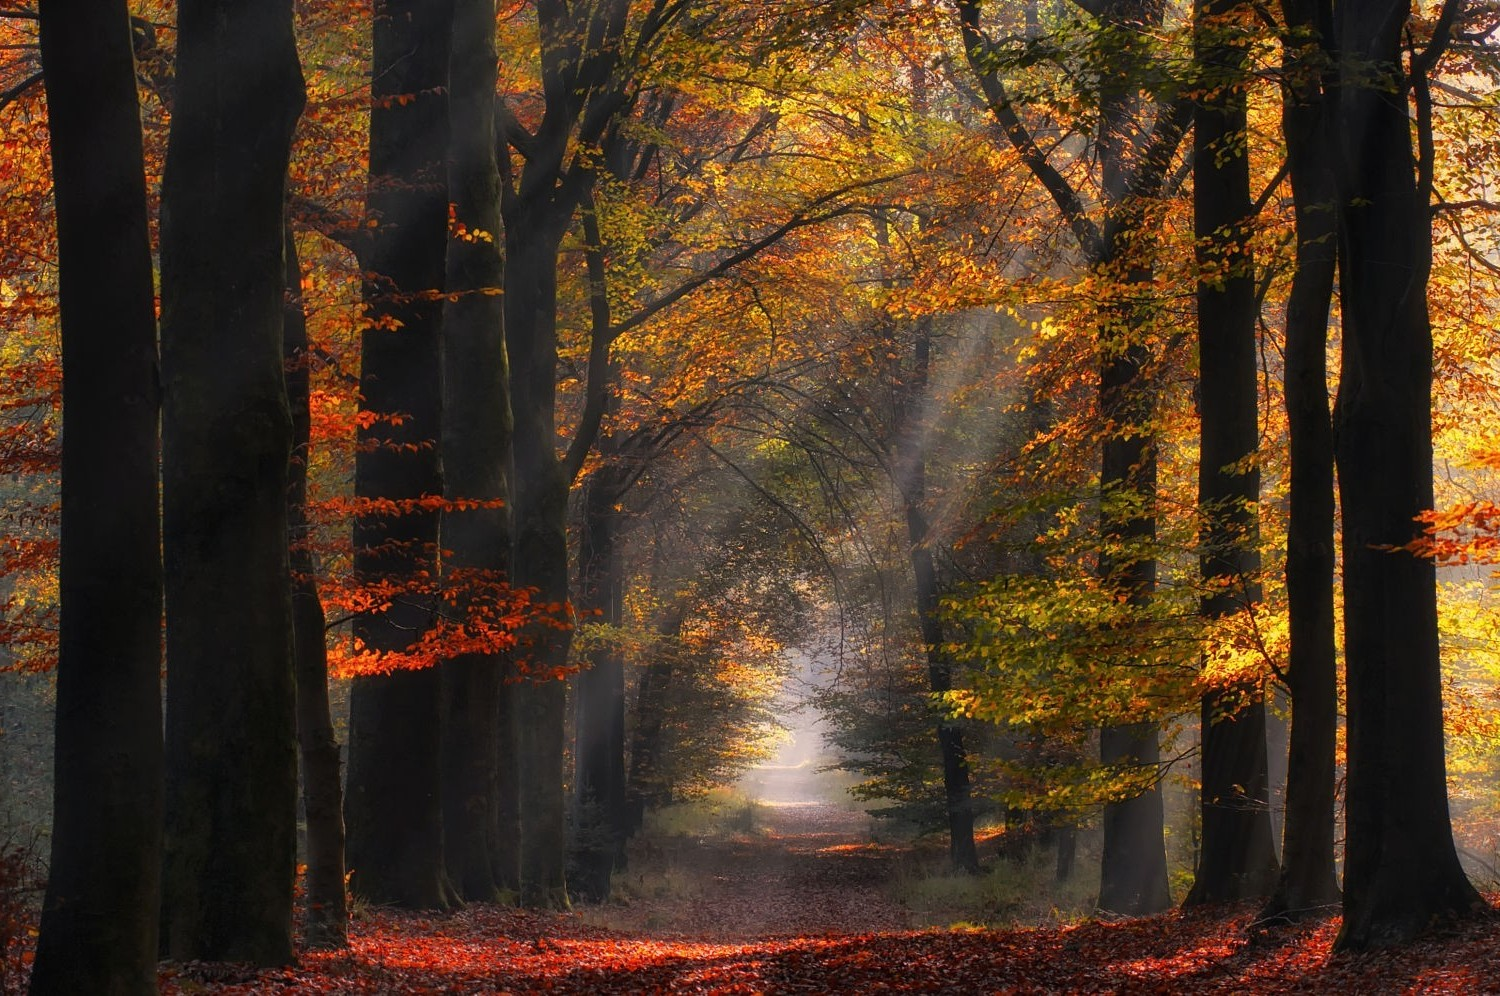 Autumn Fall Wallpaper 1600x900 Nature Landscape Colorful Forest Path Sun Rays Mist